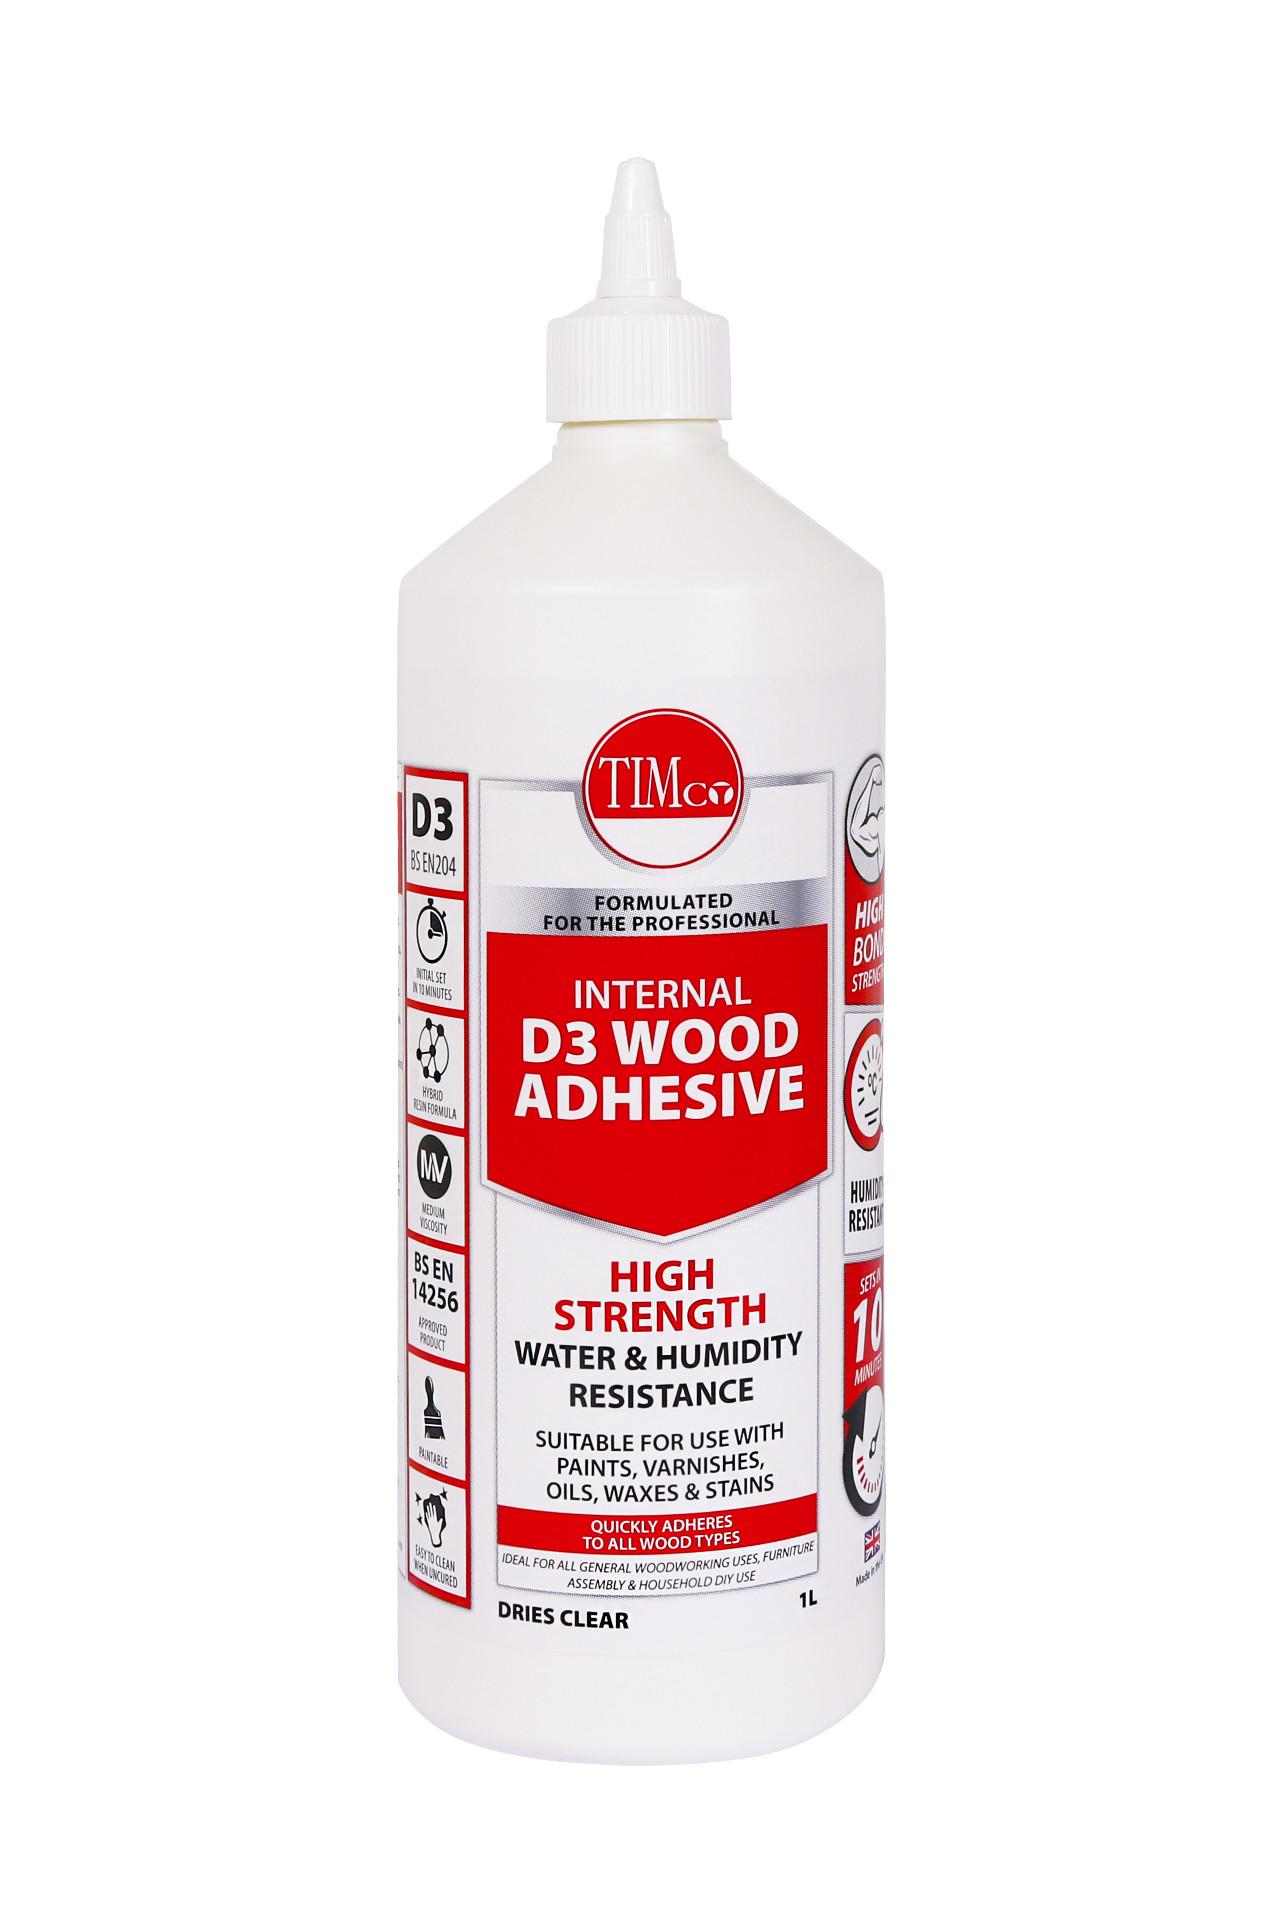 Adhesive Type D3 for Internal Wood #3